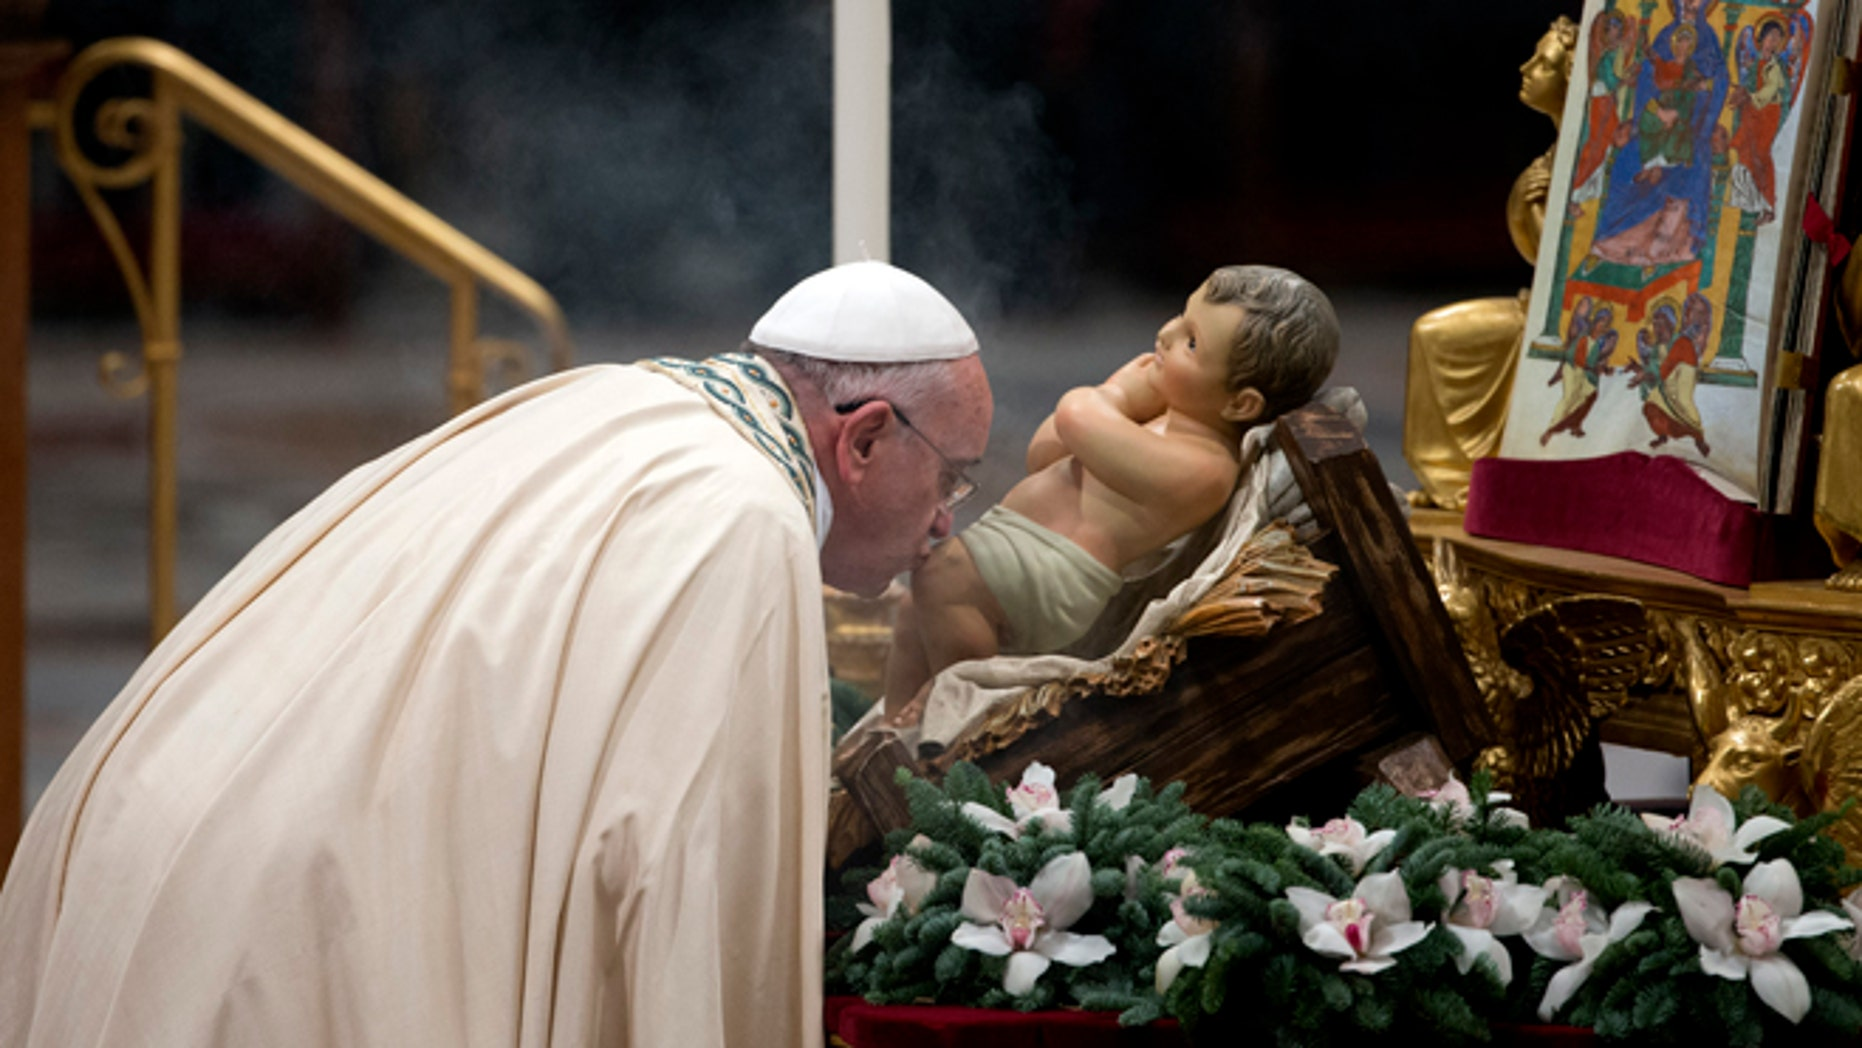 Dec. 31, 2014: Pope Francis kisses a statue of the baby Jesus as he arrives to celebrate the new year's eve vespers Mass in St. Peter's Basilica at the Vatican. (AP)